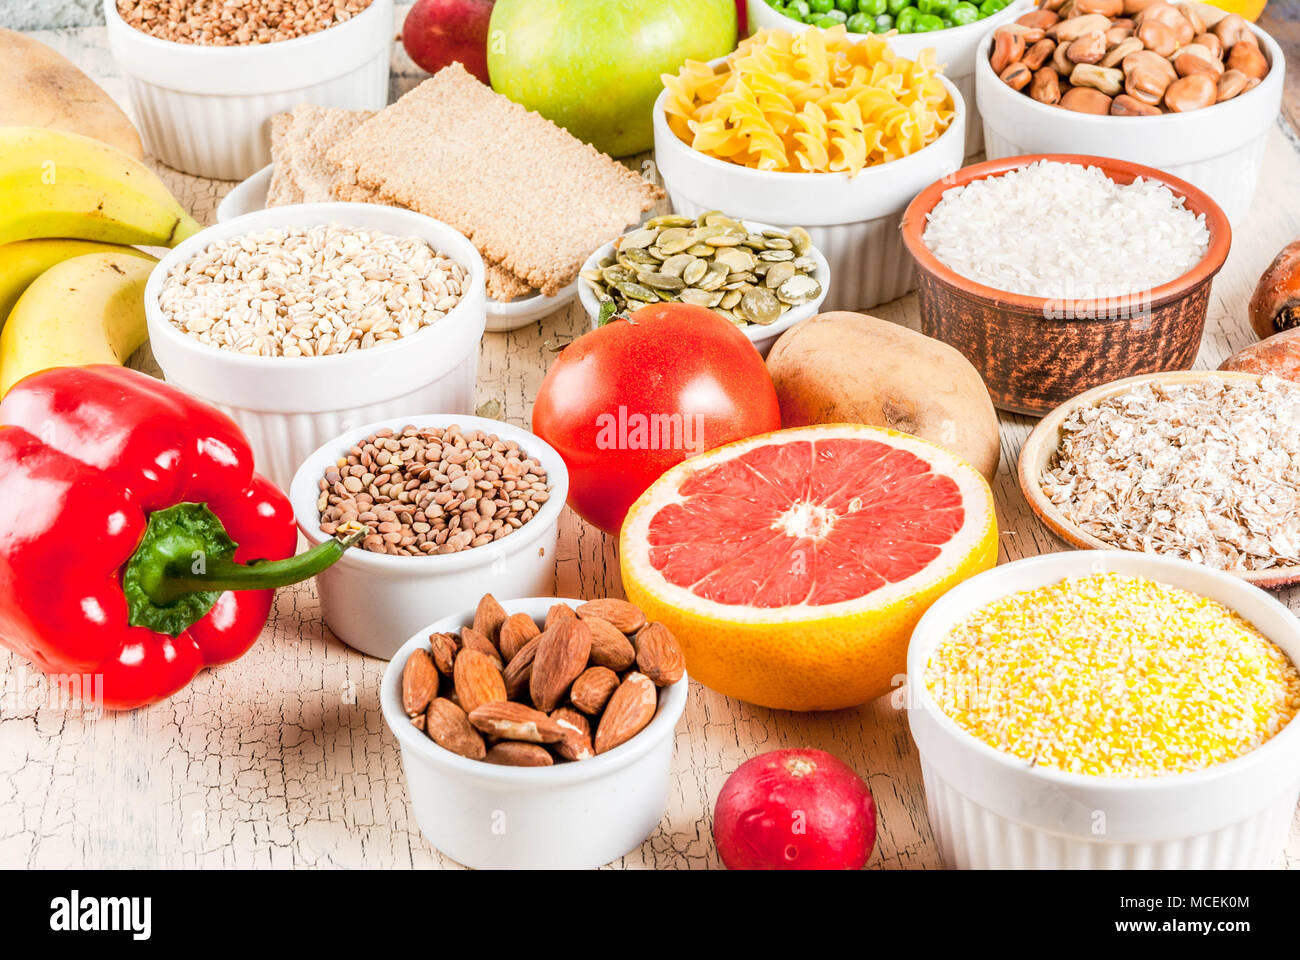 Diet food background concept, healthy carbohydrates (carbs) products - fruits, vegetables, cereals, nuts, beans, light concrete background - Stock Image